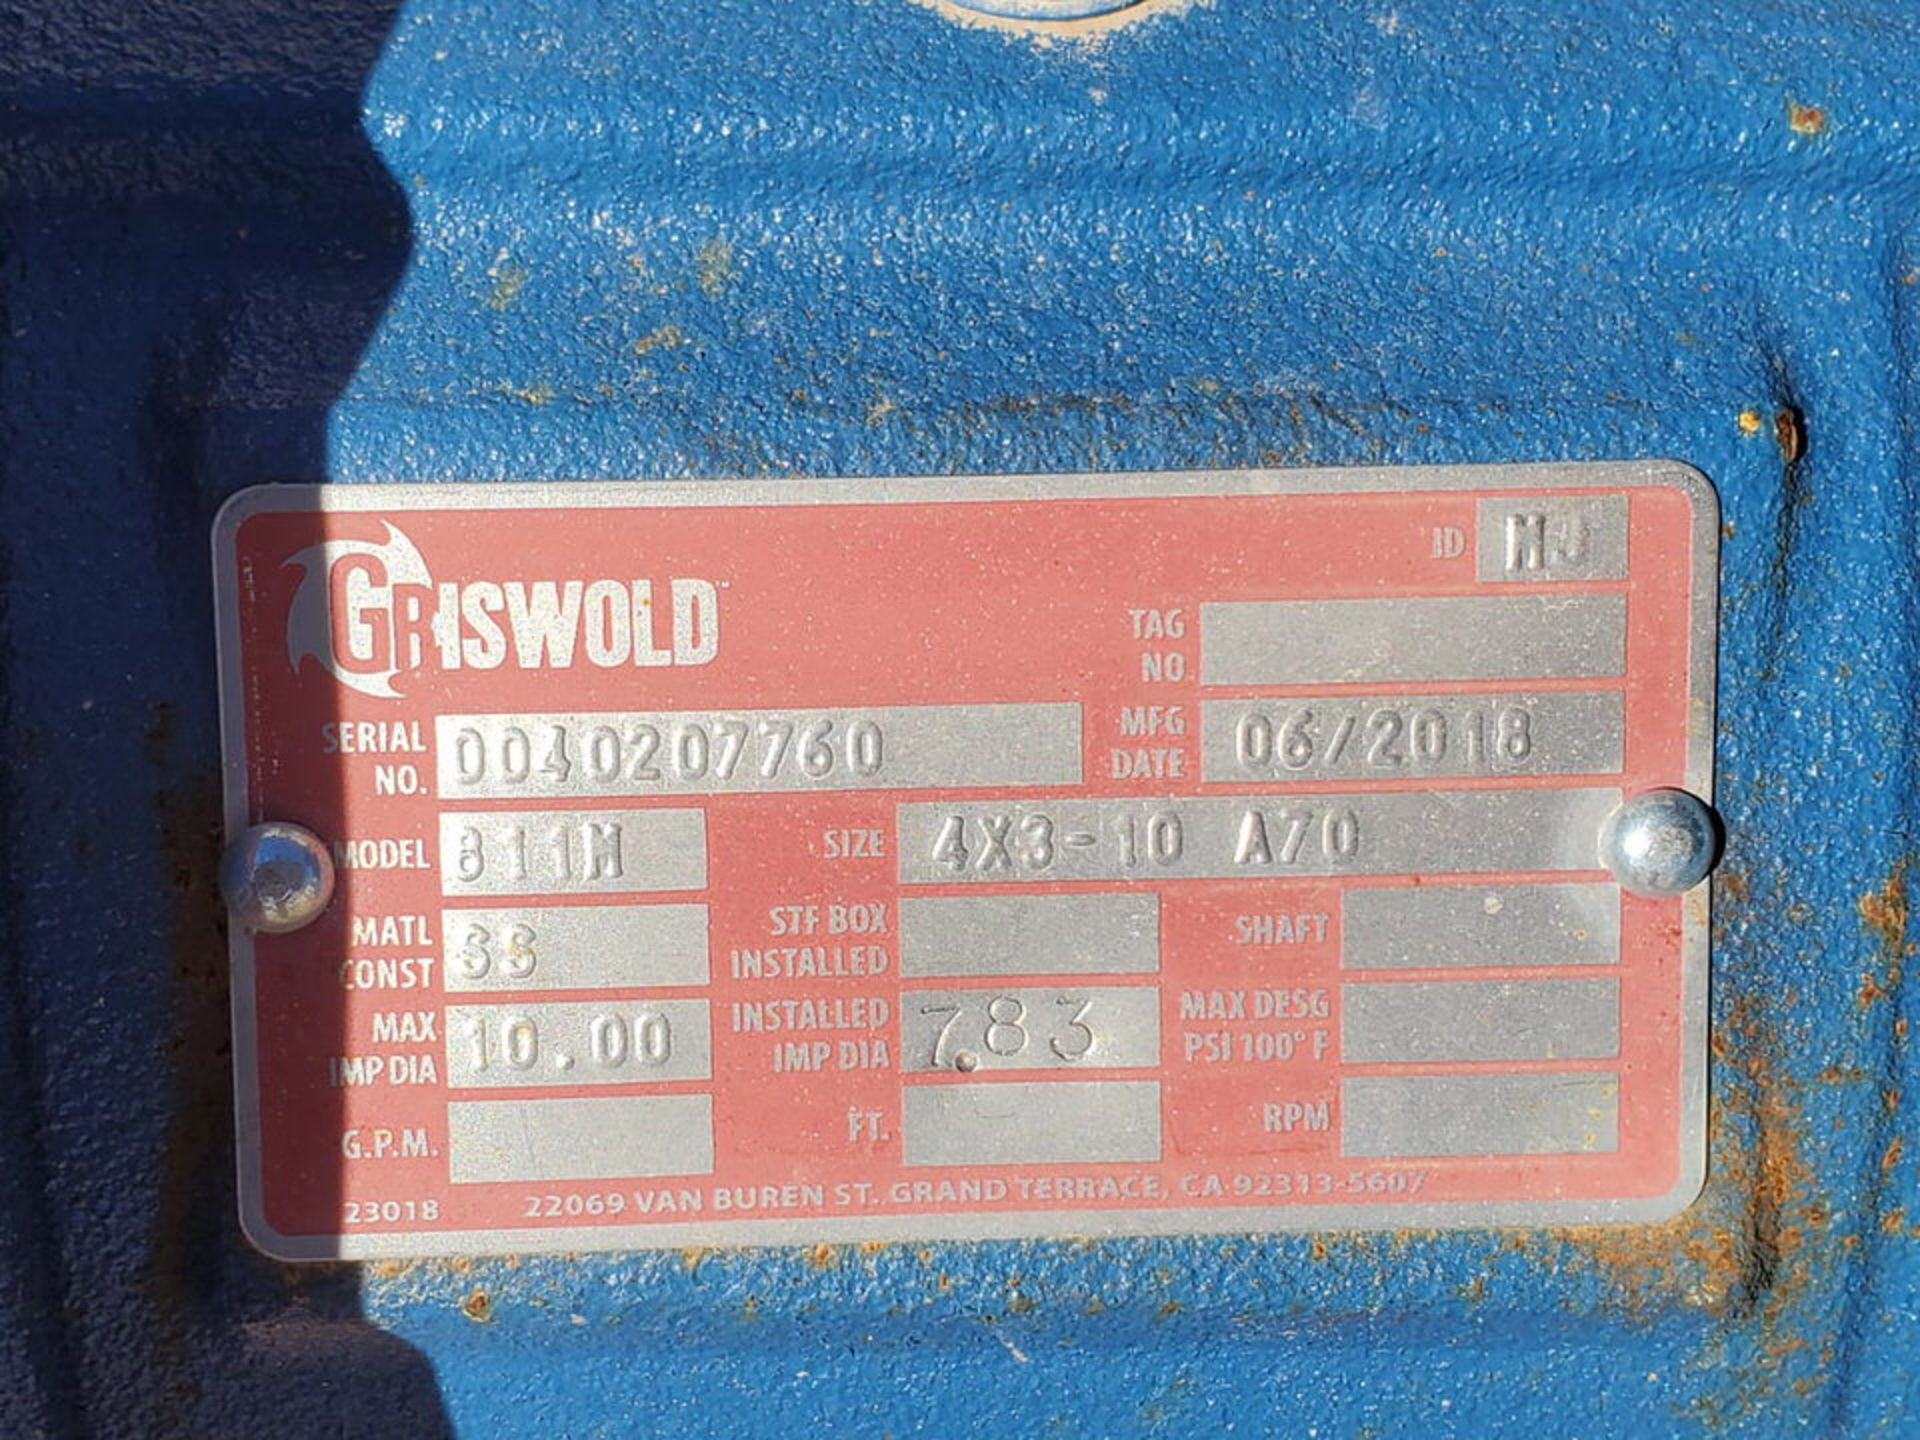 2018 Griswold 811M Centrifugal Pump Size: 4 x 3-10, 7.83 Imp Dia; W/ 50HP Motor - Image 7 of 8